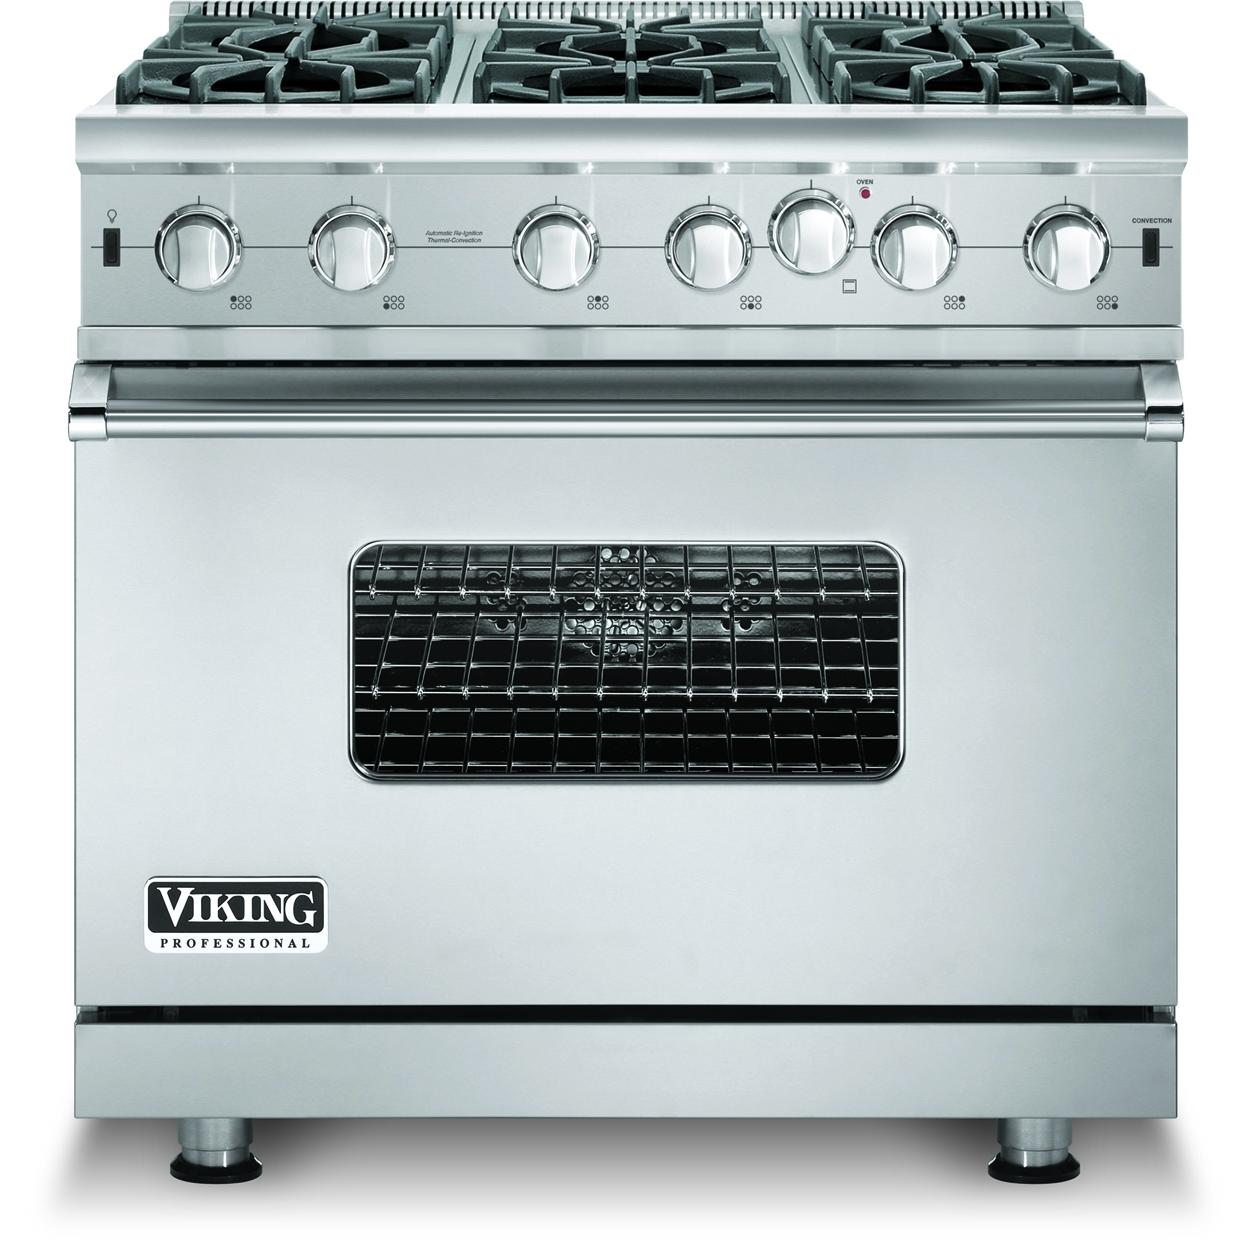 Cooktop With Grill